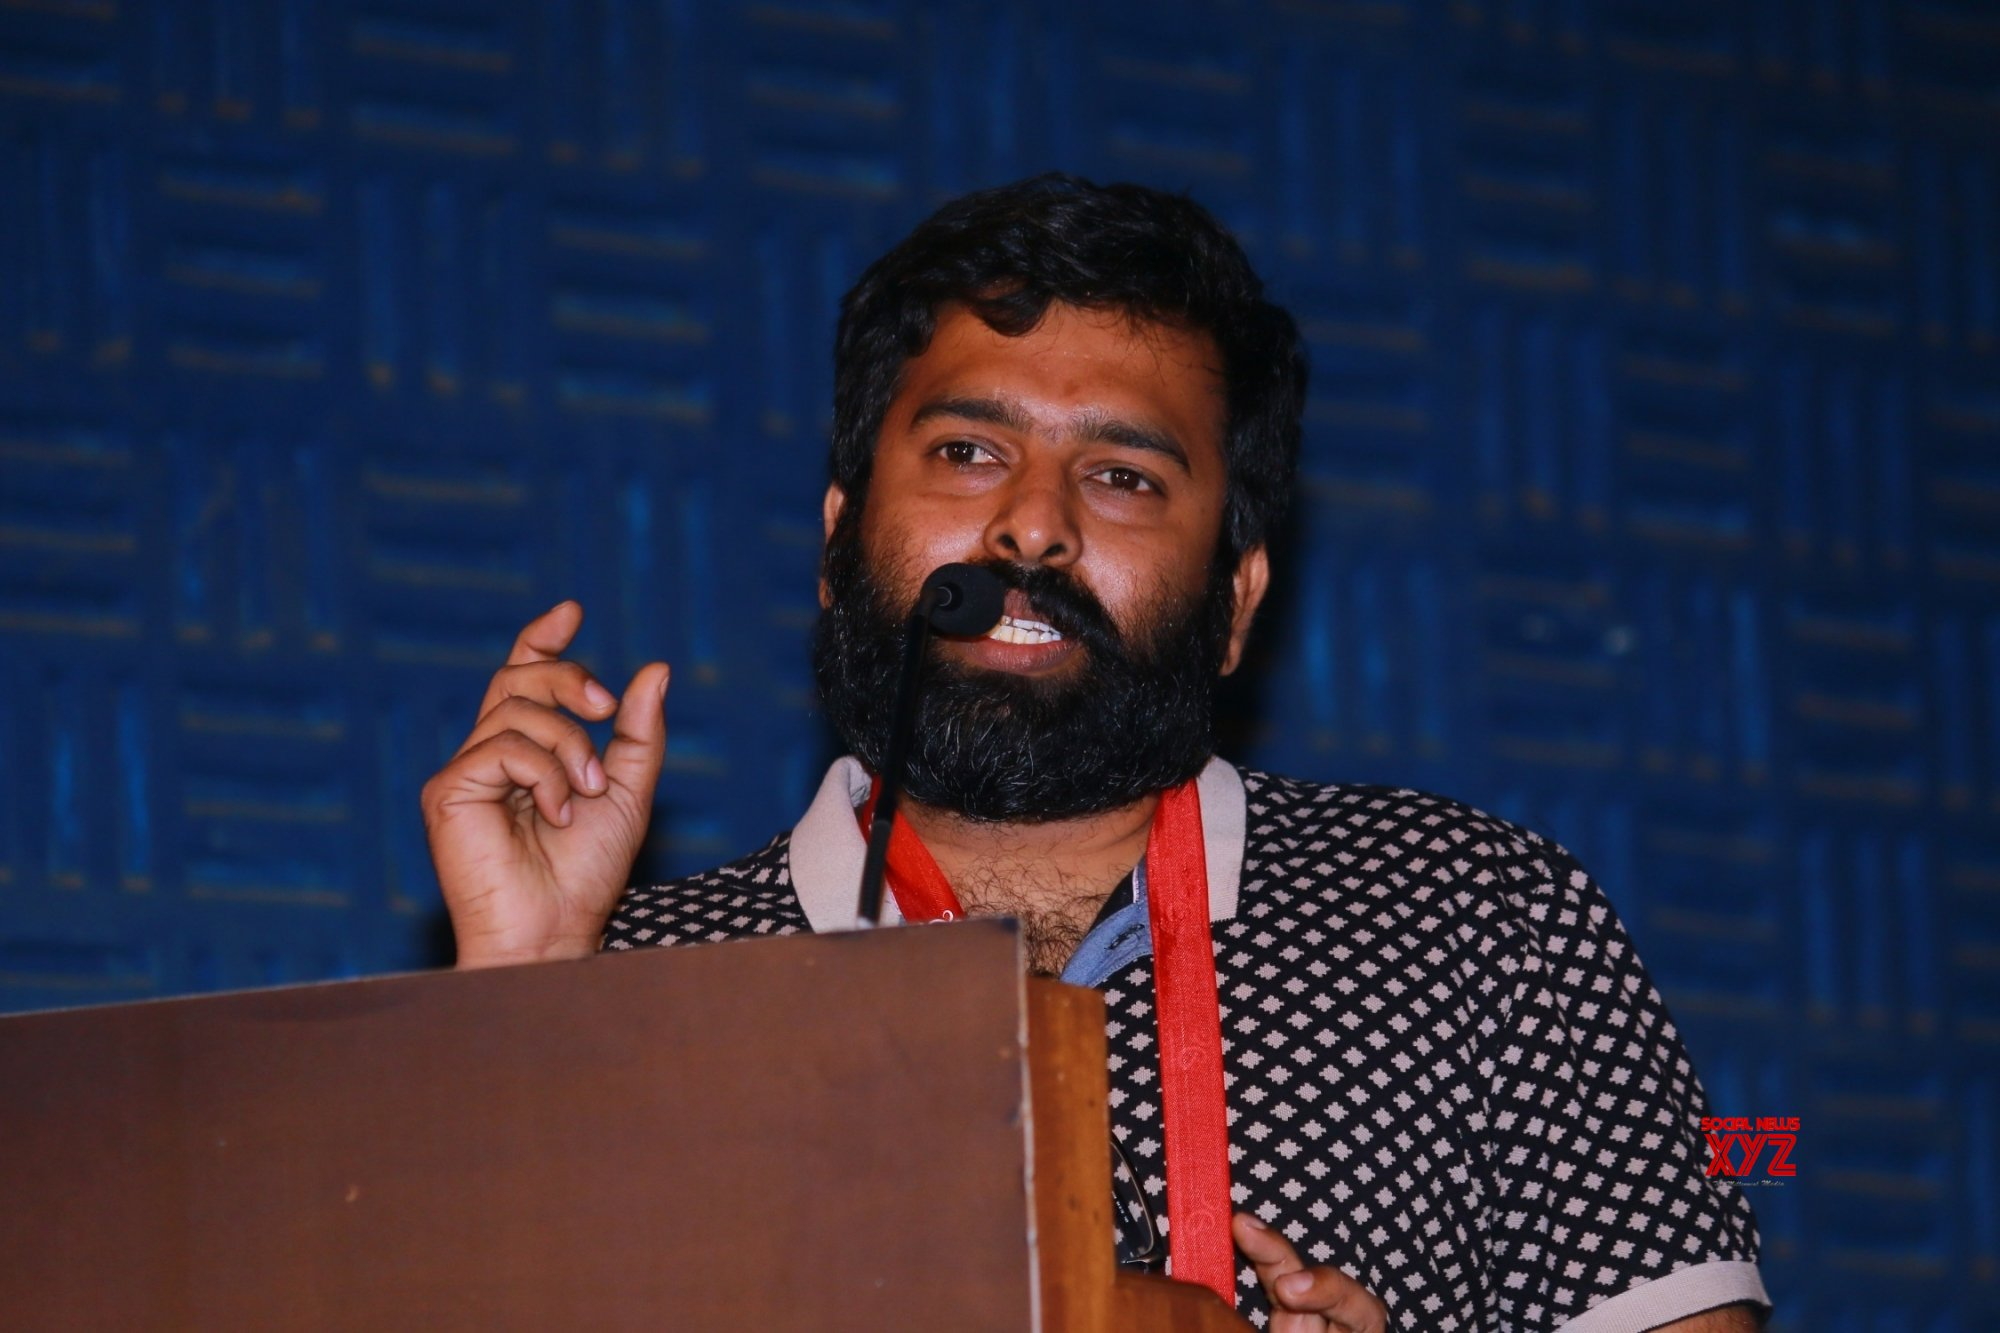 Tamil composer Santhosh Narayanan: I call this golden time for indie music